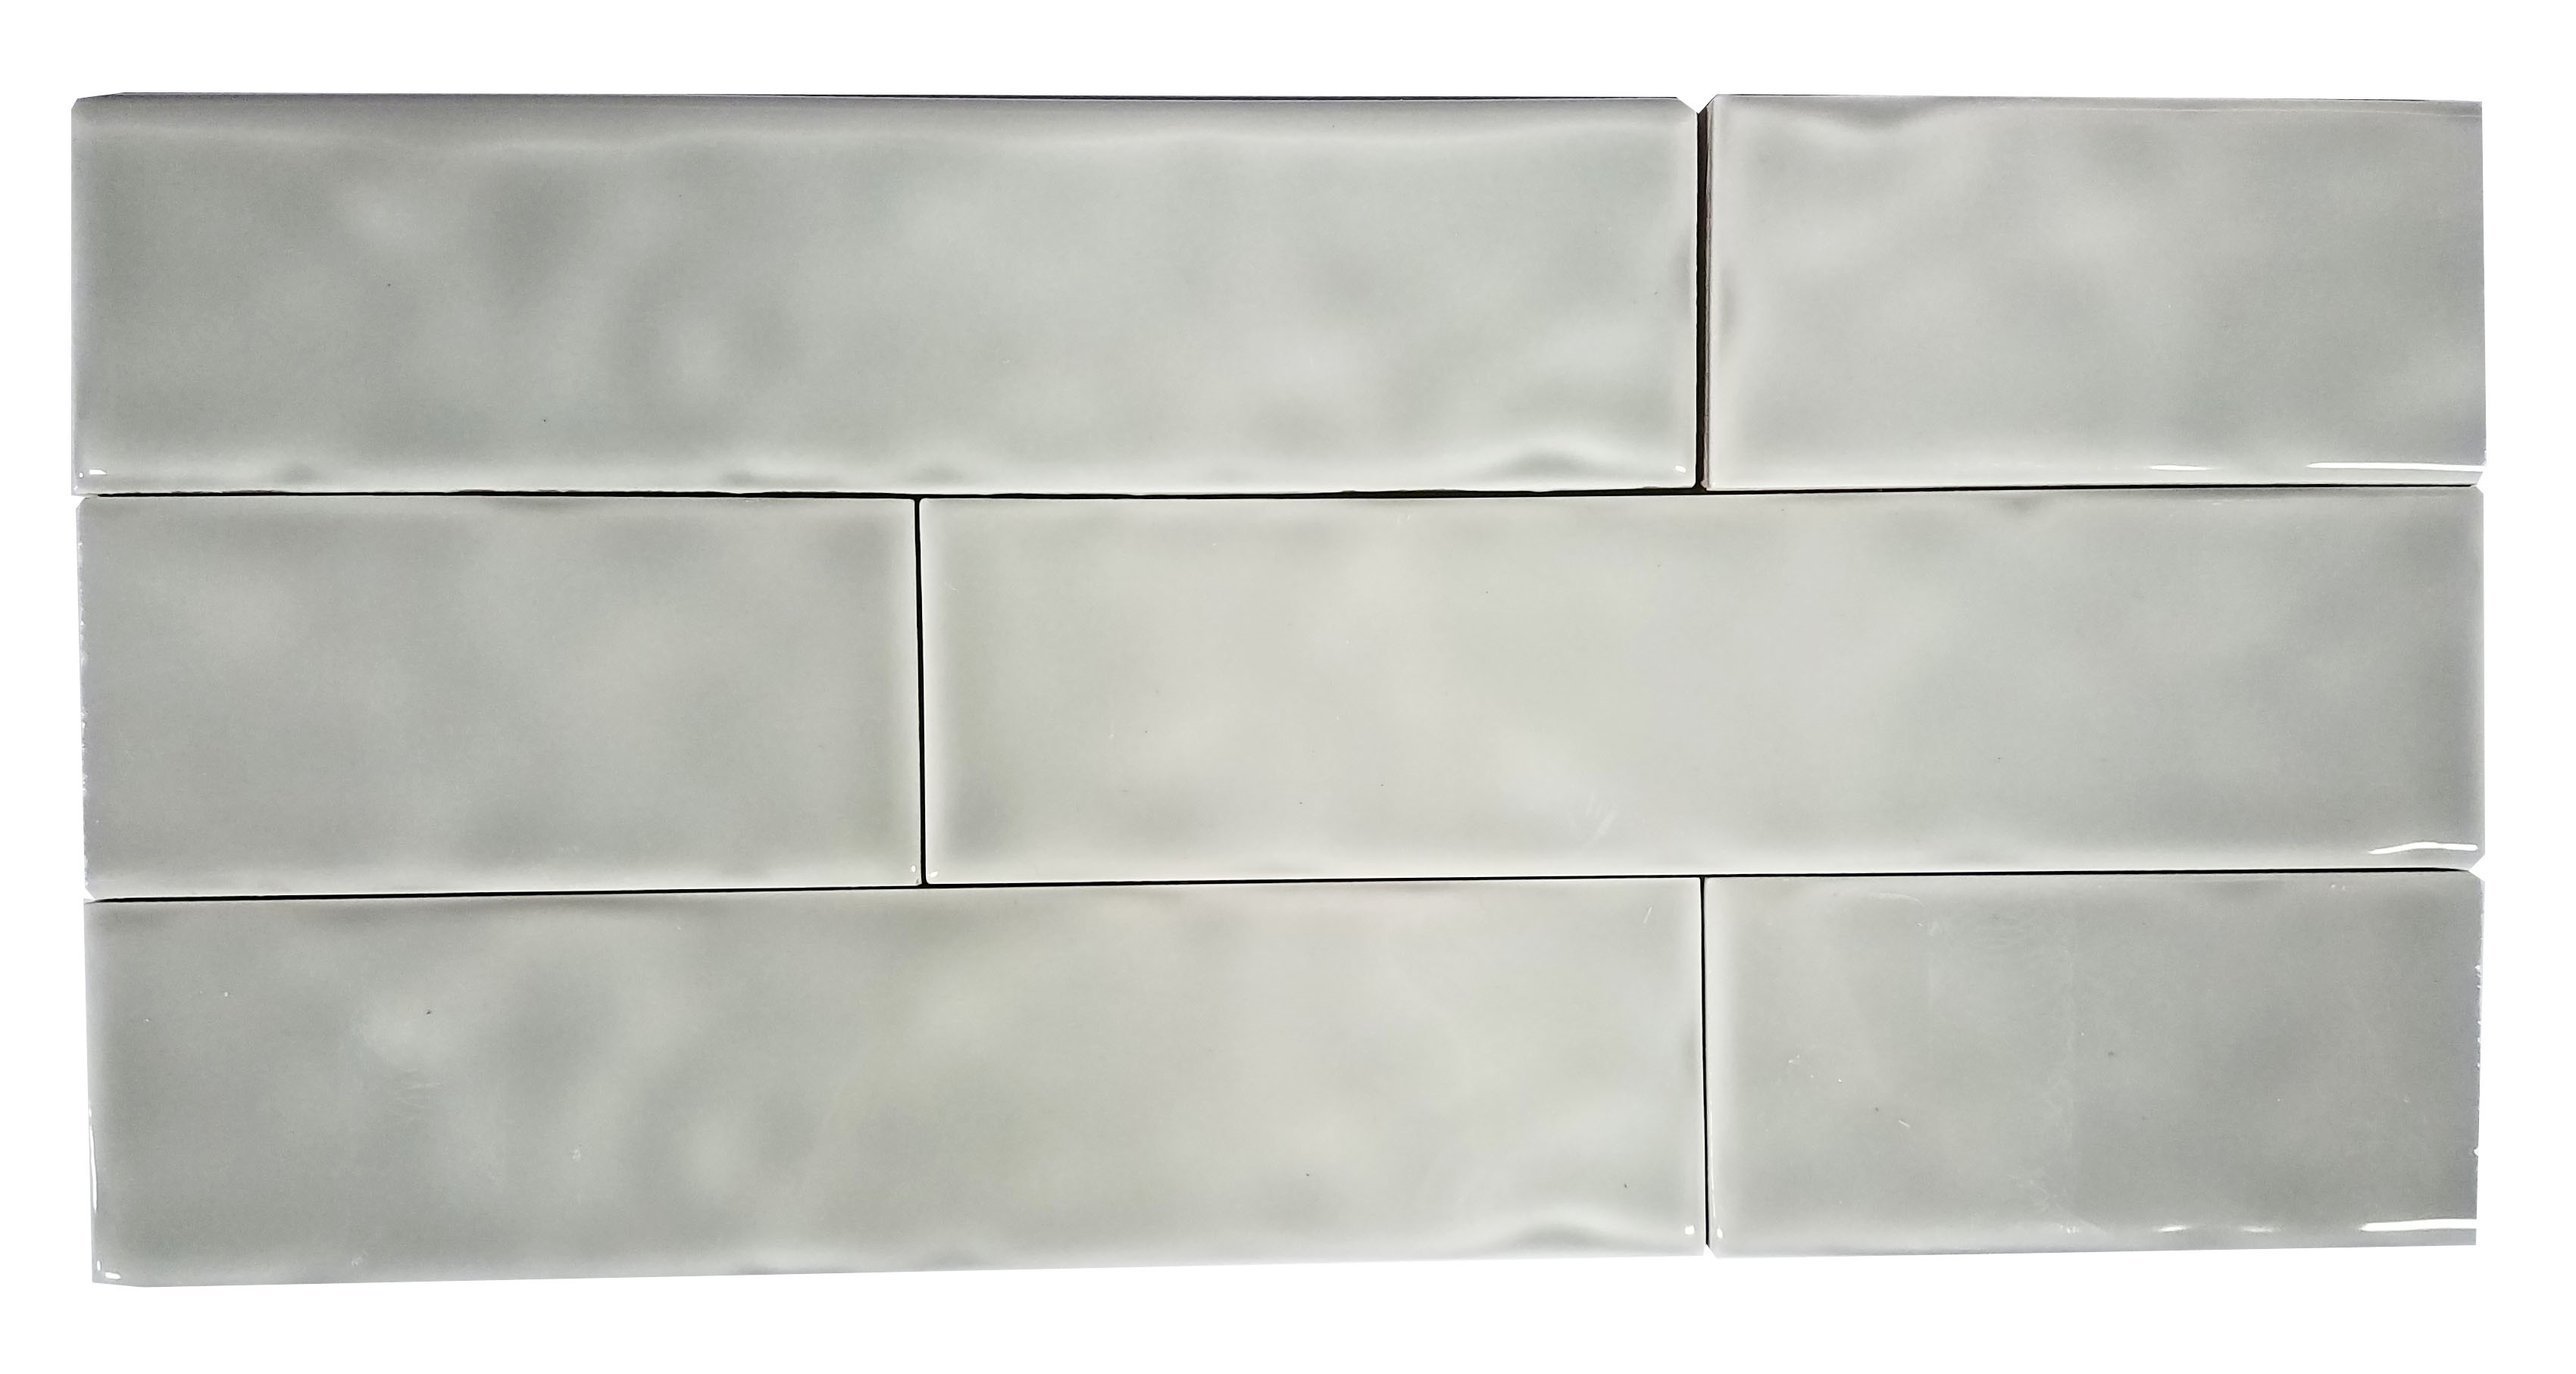 Cool 12X12 Ceramic Floor Tile Tall 12X12 Cork Floor Tiles Solid 1930S Floor Tiles 2 X 6 Ceramic Tile Old 2X4 Fiberglass Ceiling Tiles Soft3 Tile Patterns For Floors 2 X 8